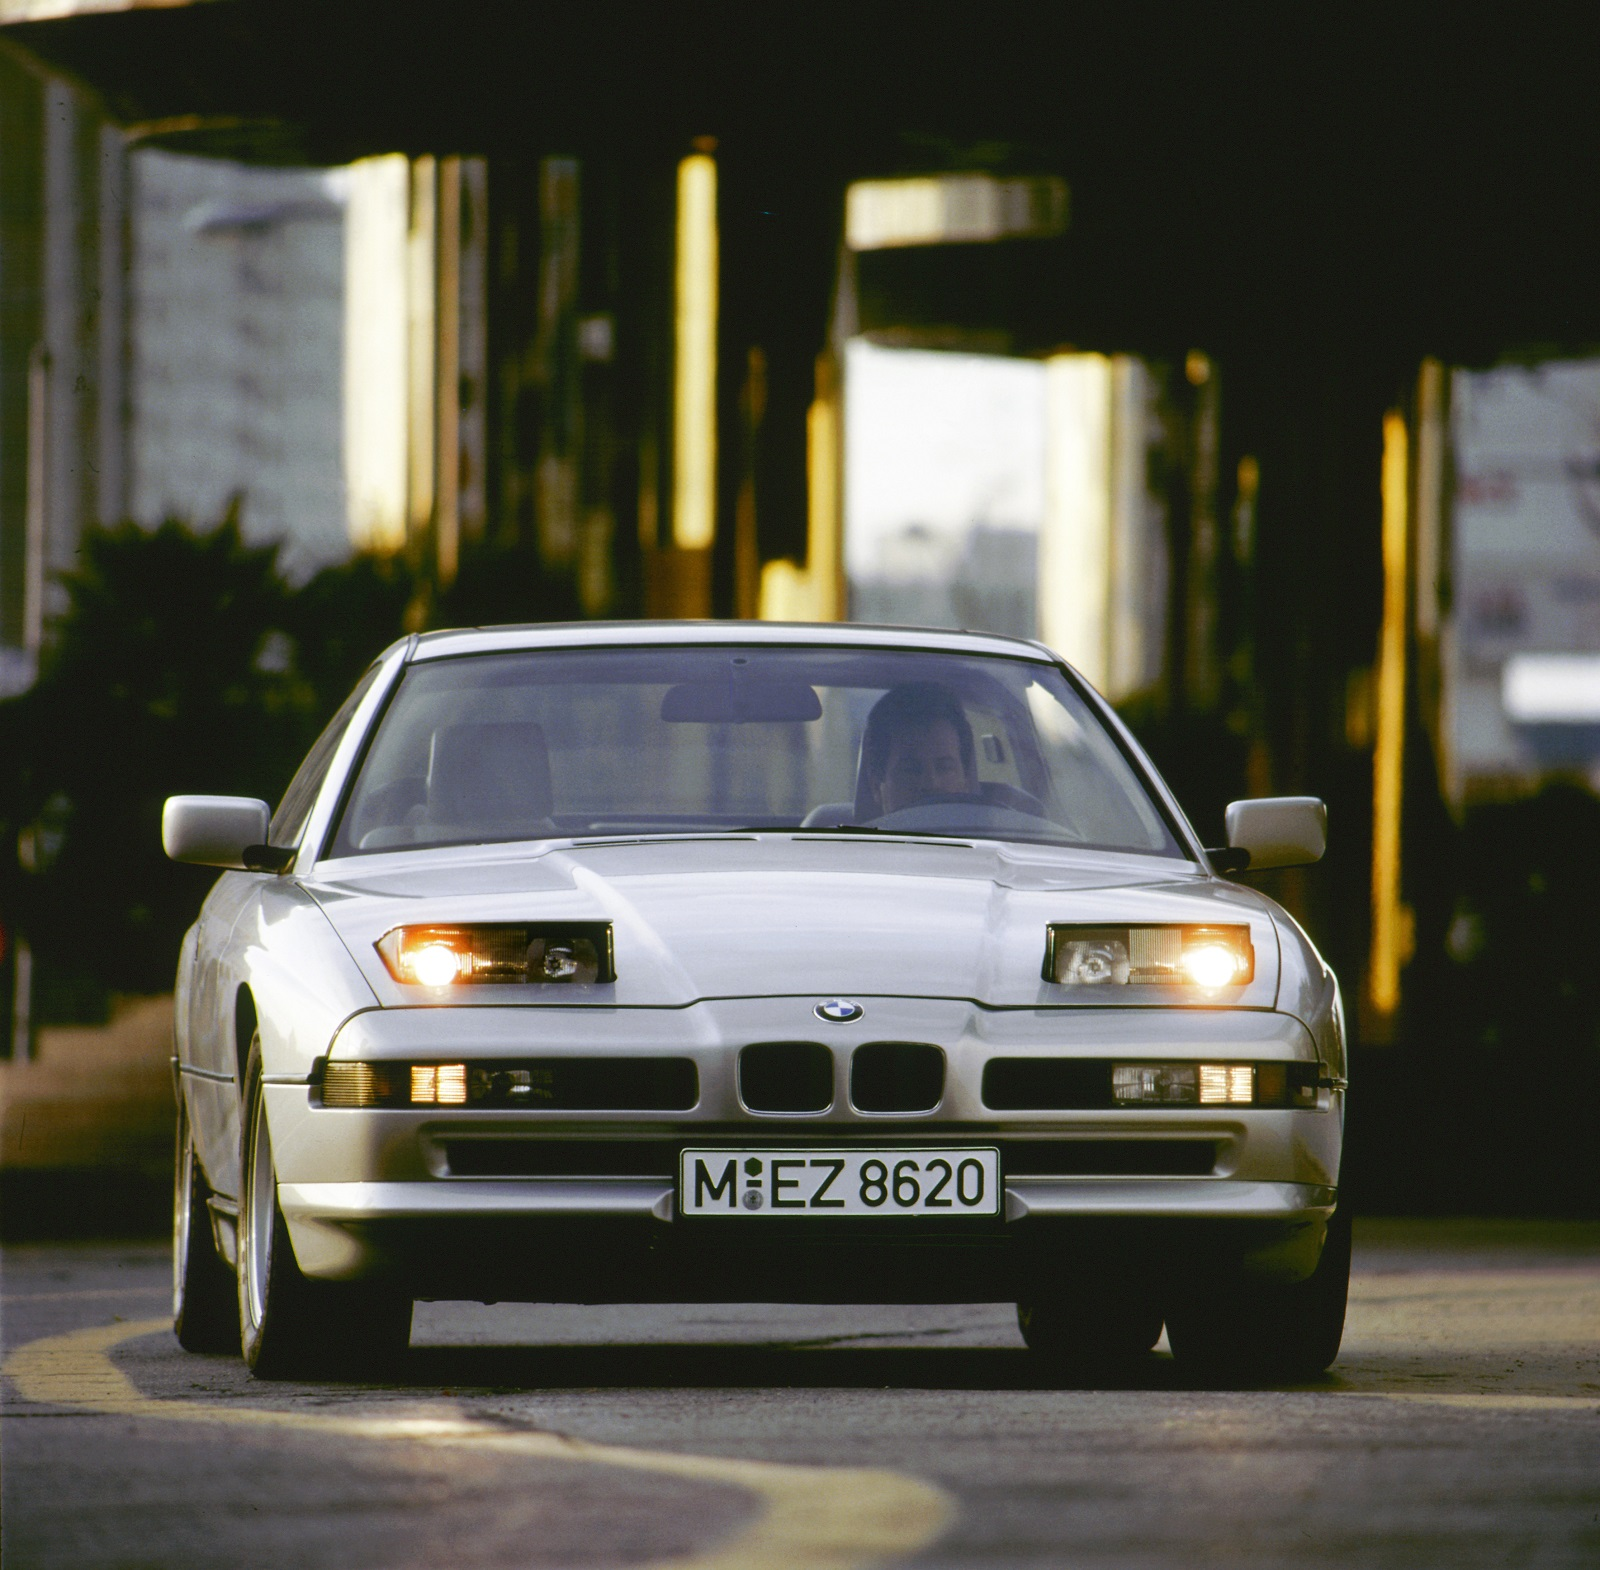 Bmw Years: The 8 Series Is A Quarter-Century Old Now